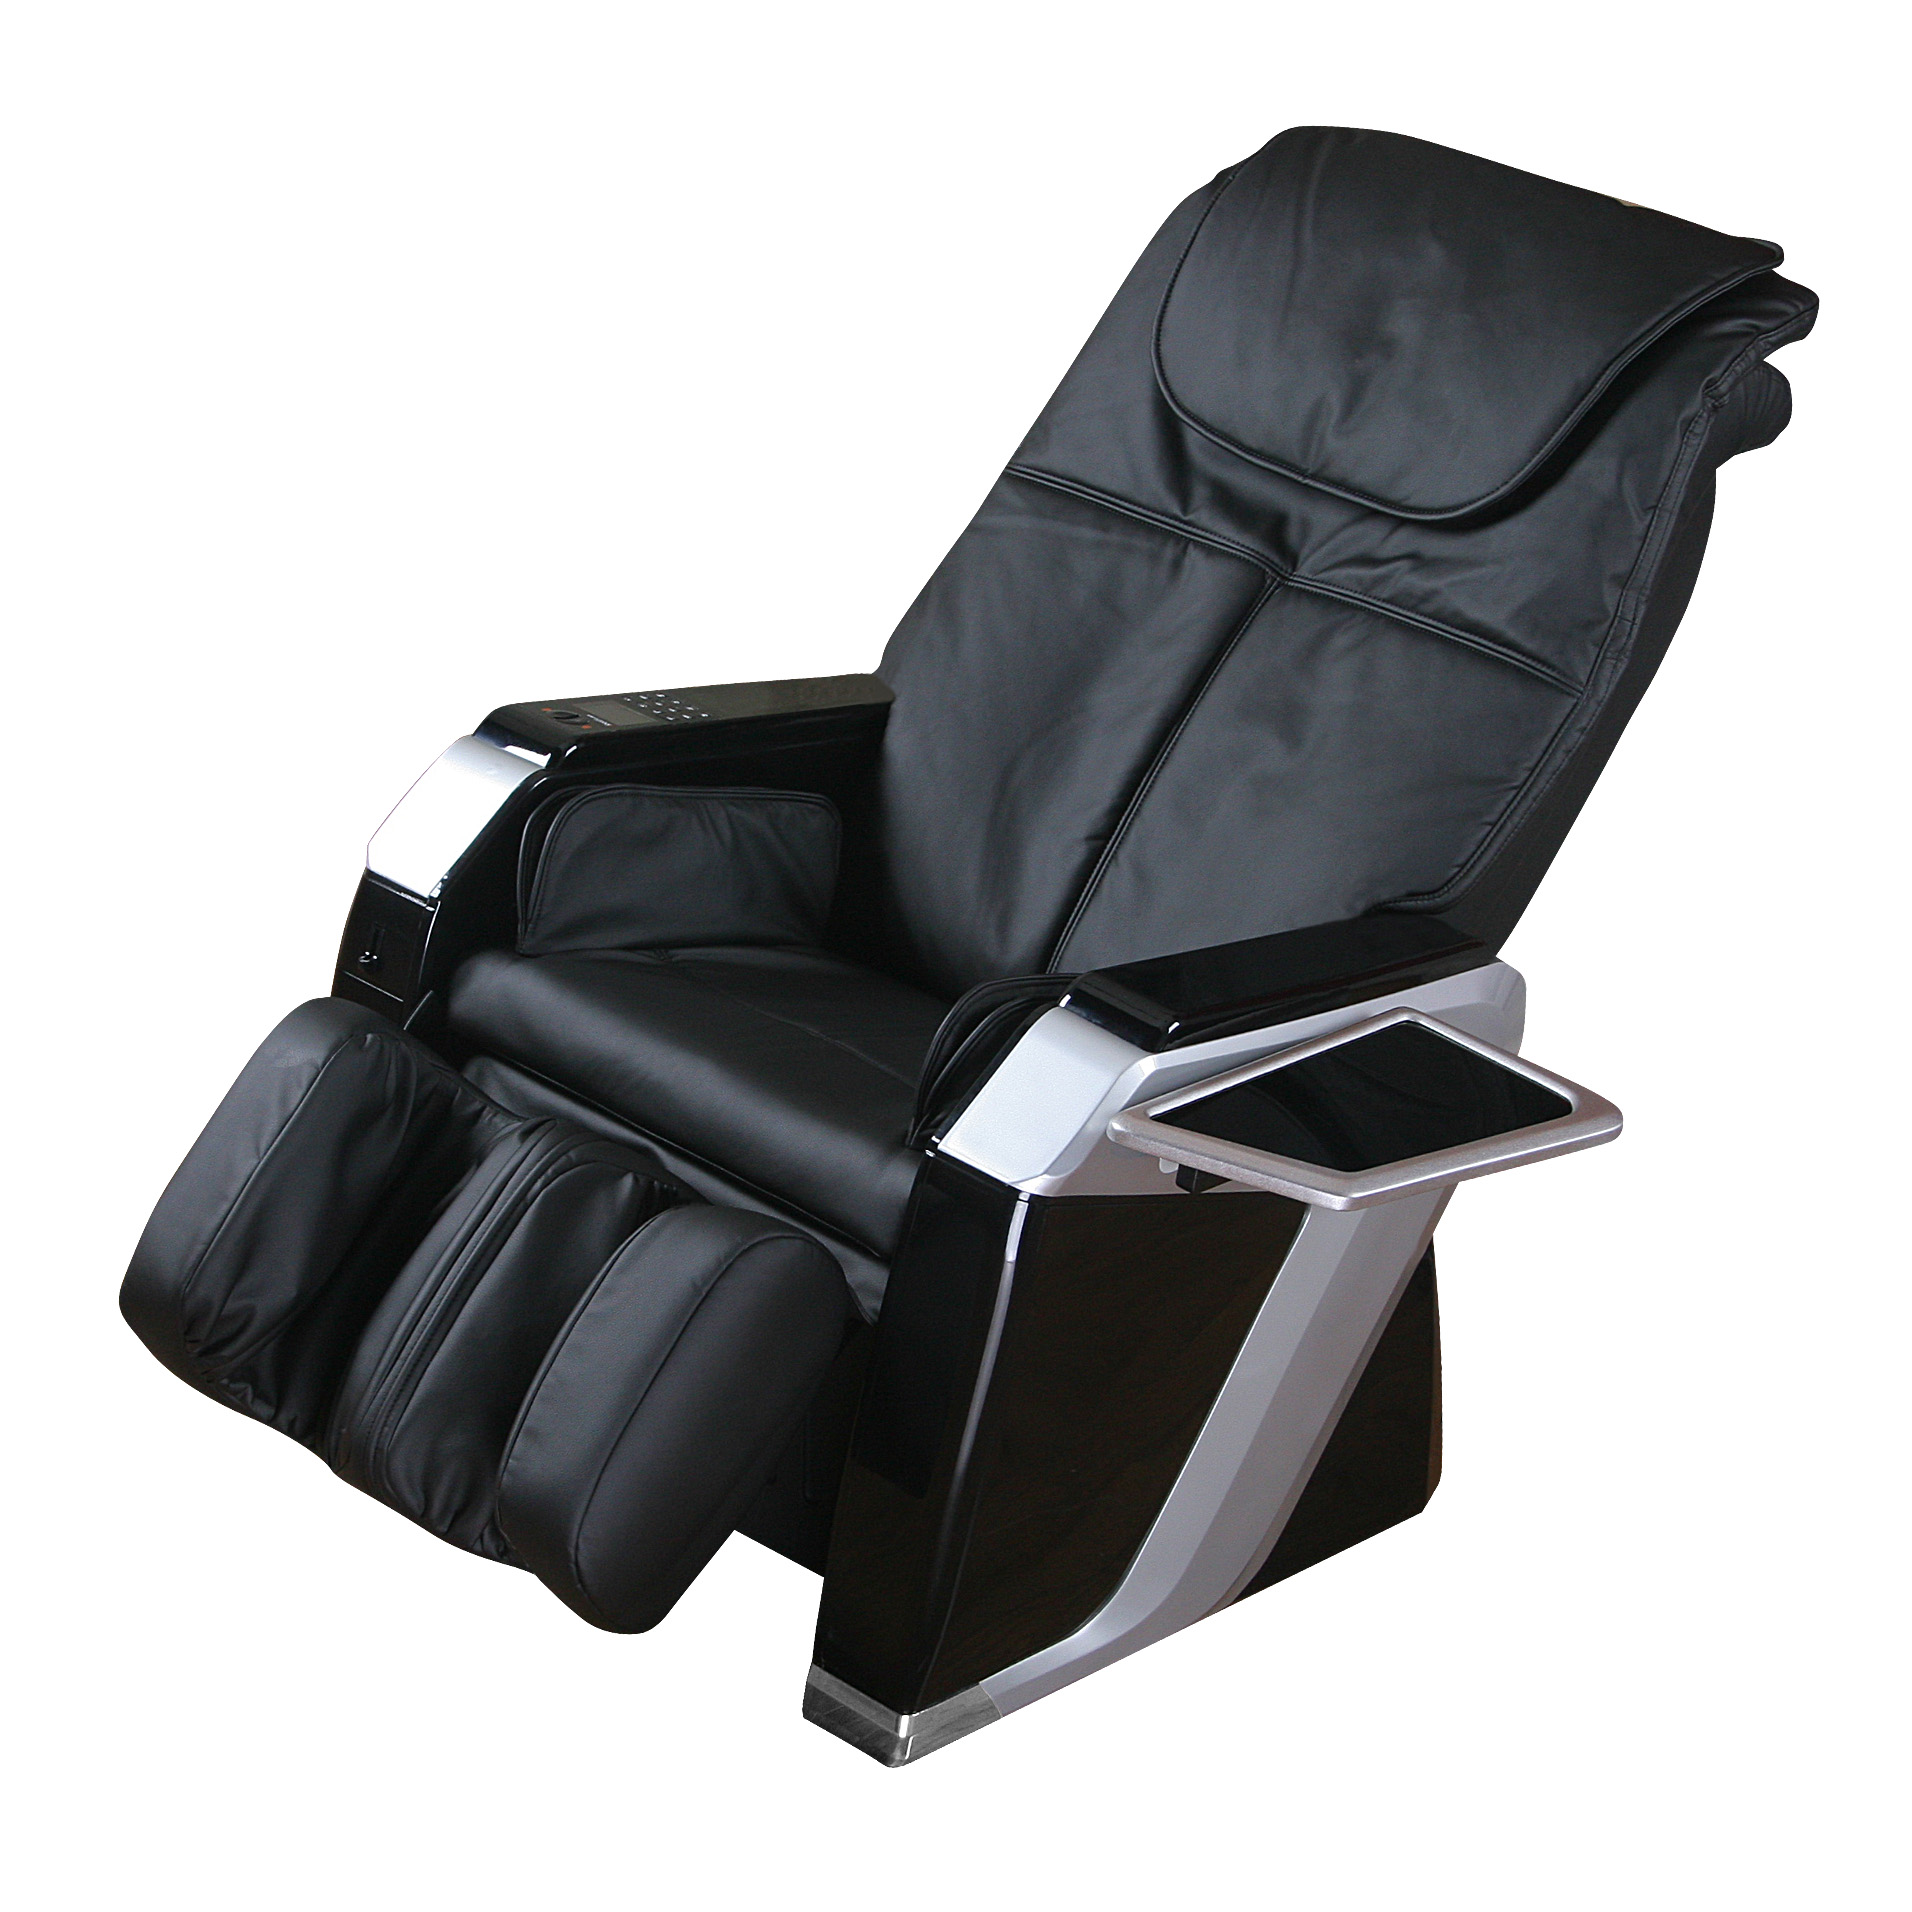 iRest T101 2 Massage Chair Euro Coin Operated